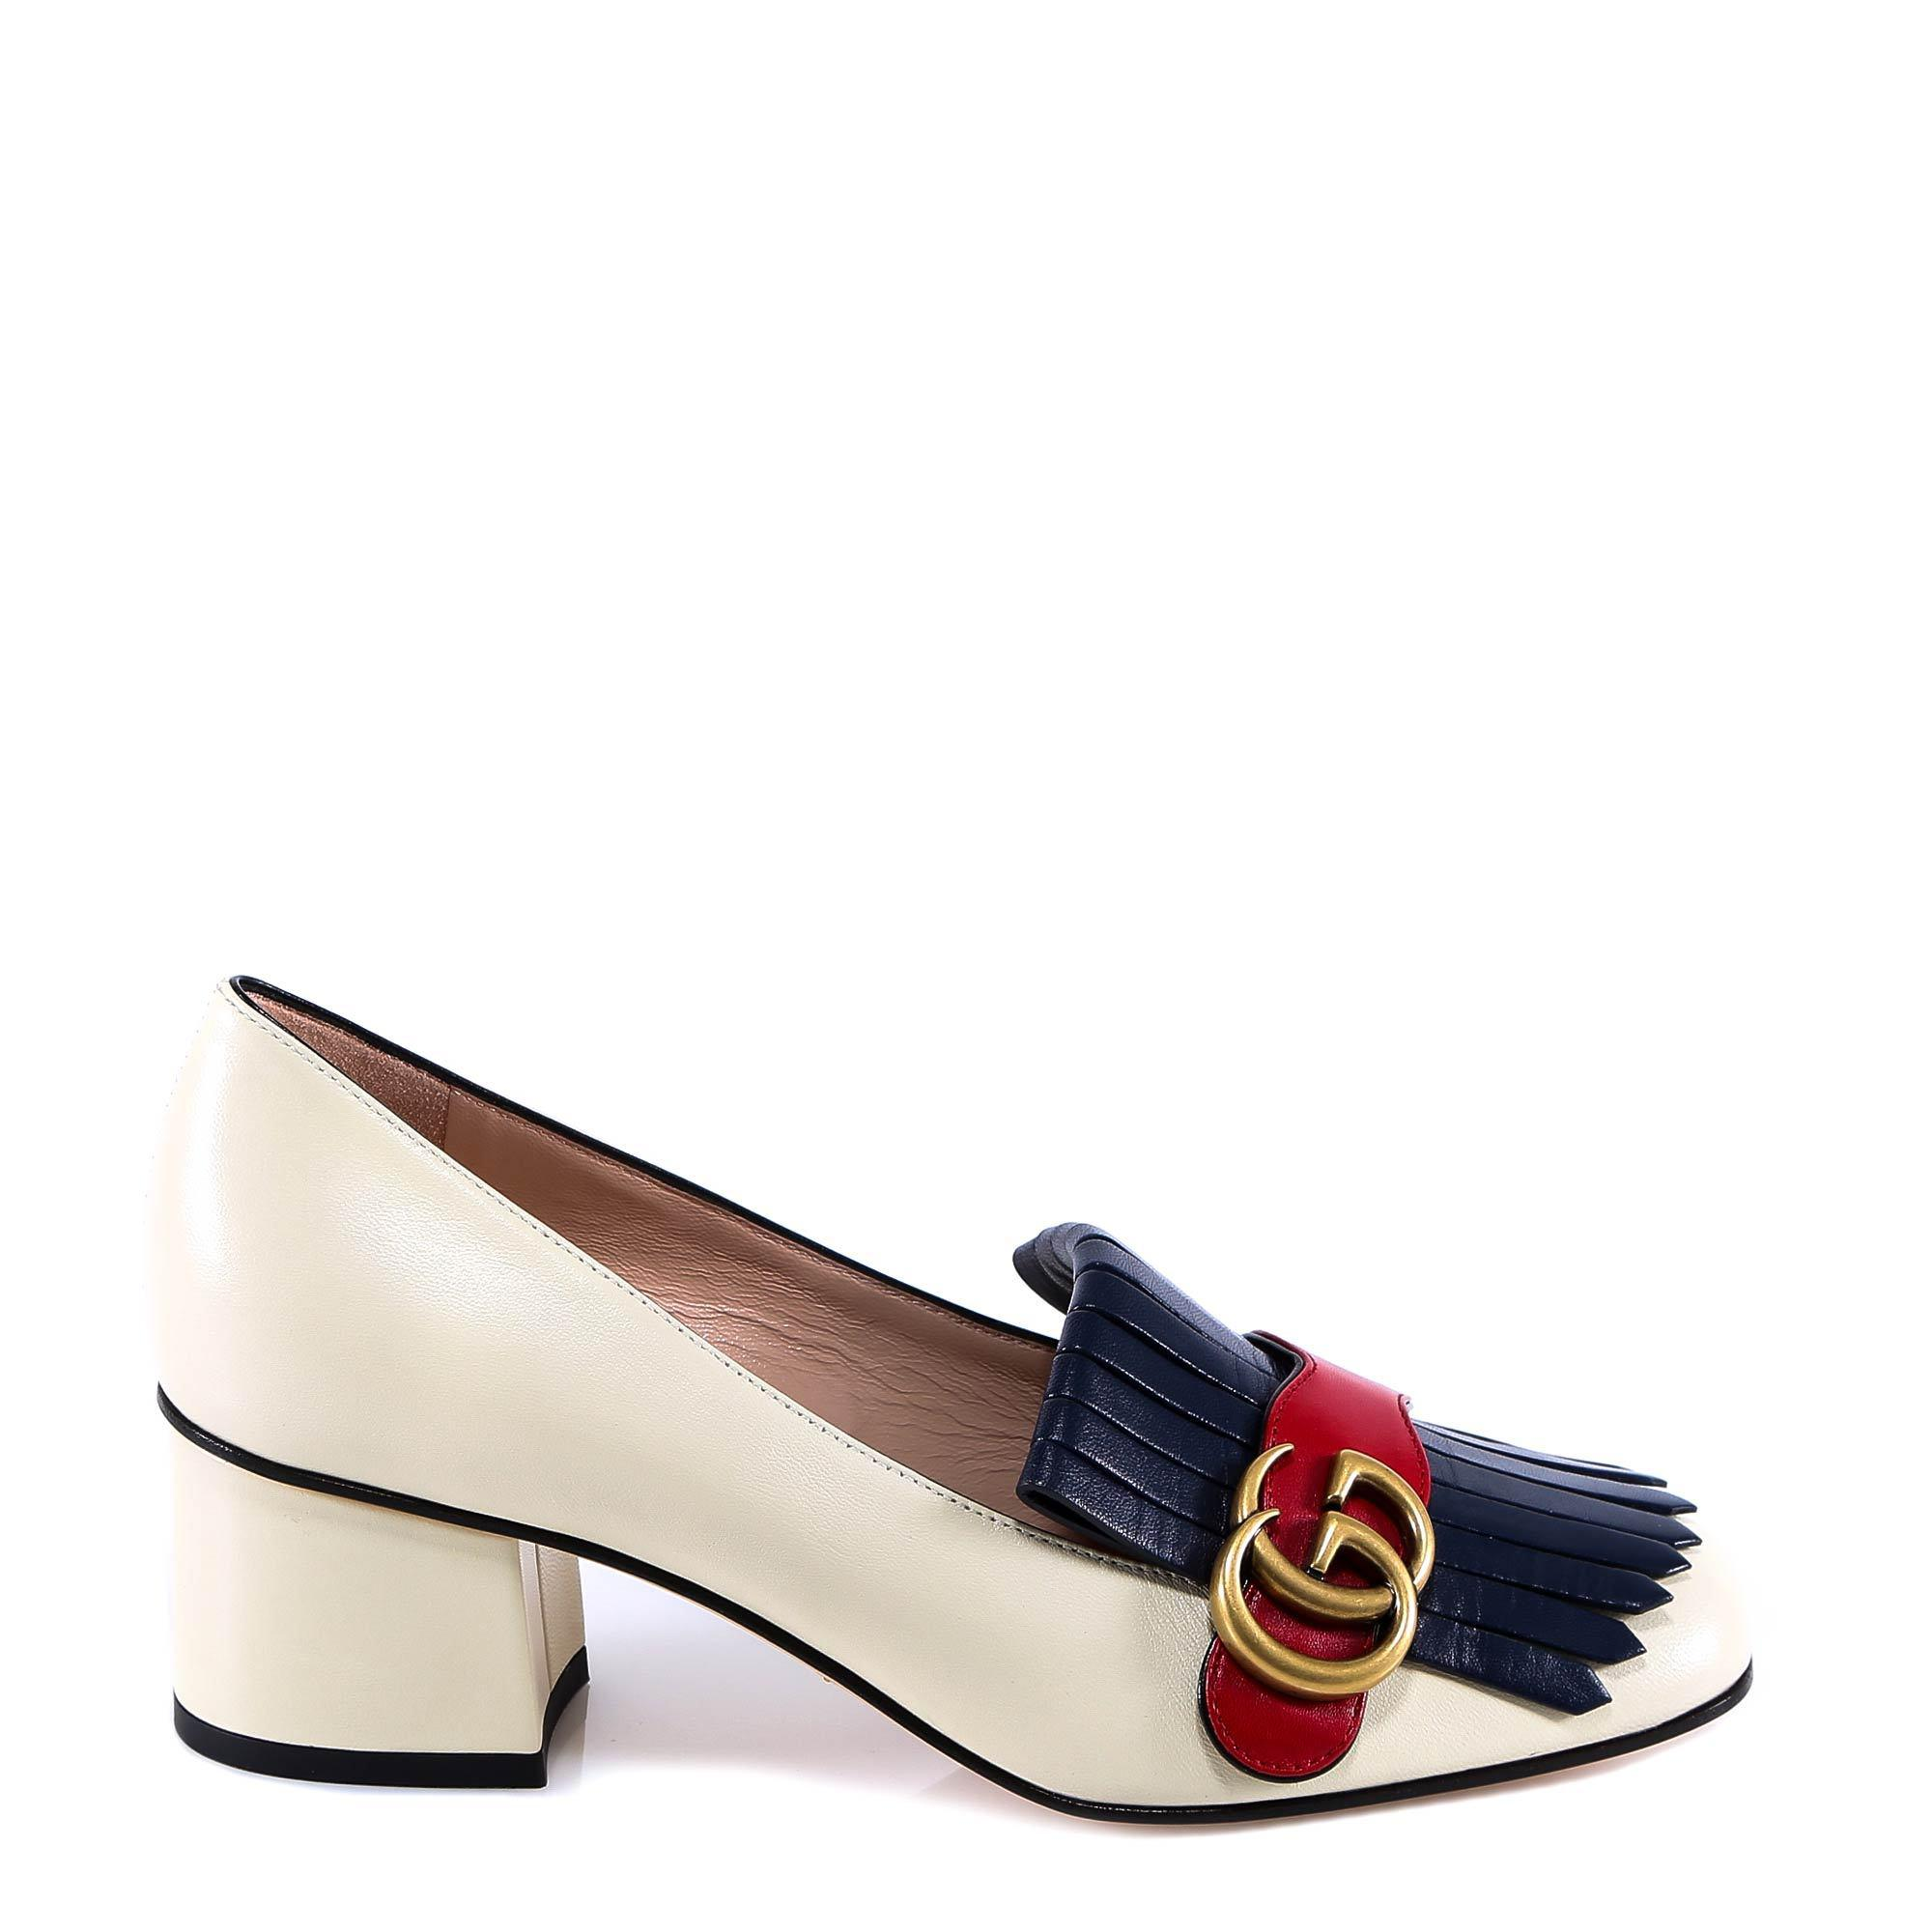 1bed5af4118 Lyst - Gucci GG Marmont Loafer Pumps in White